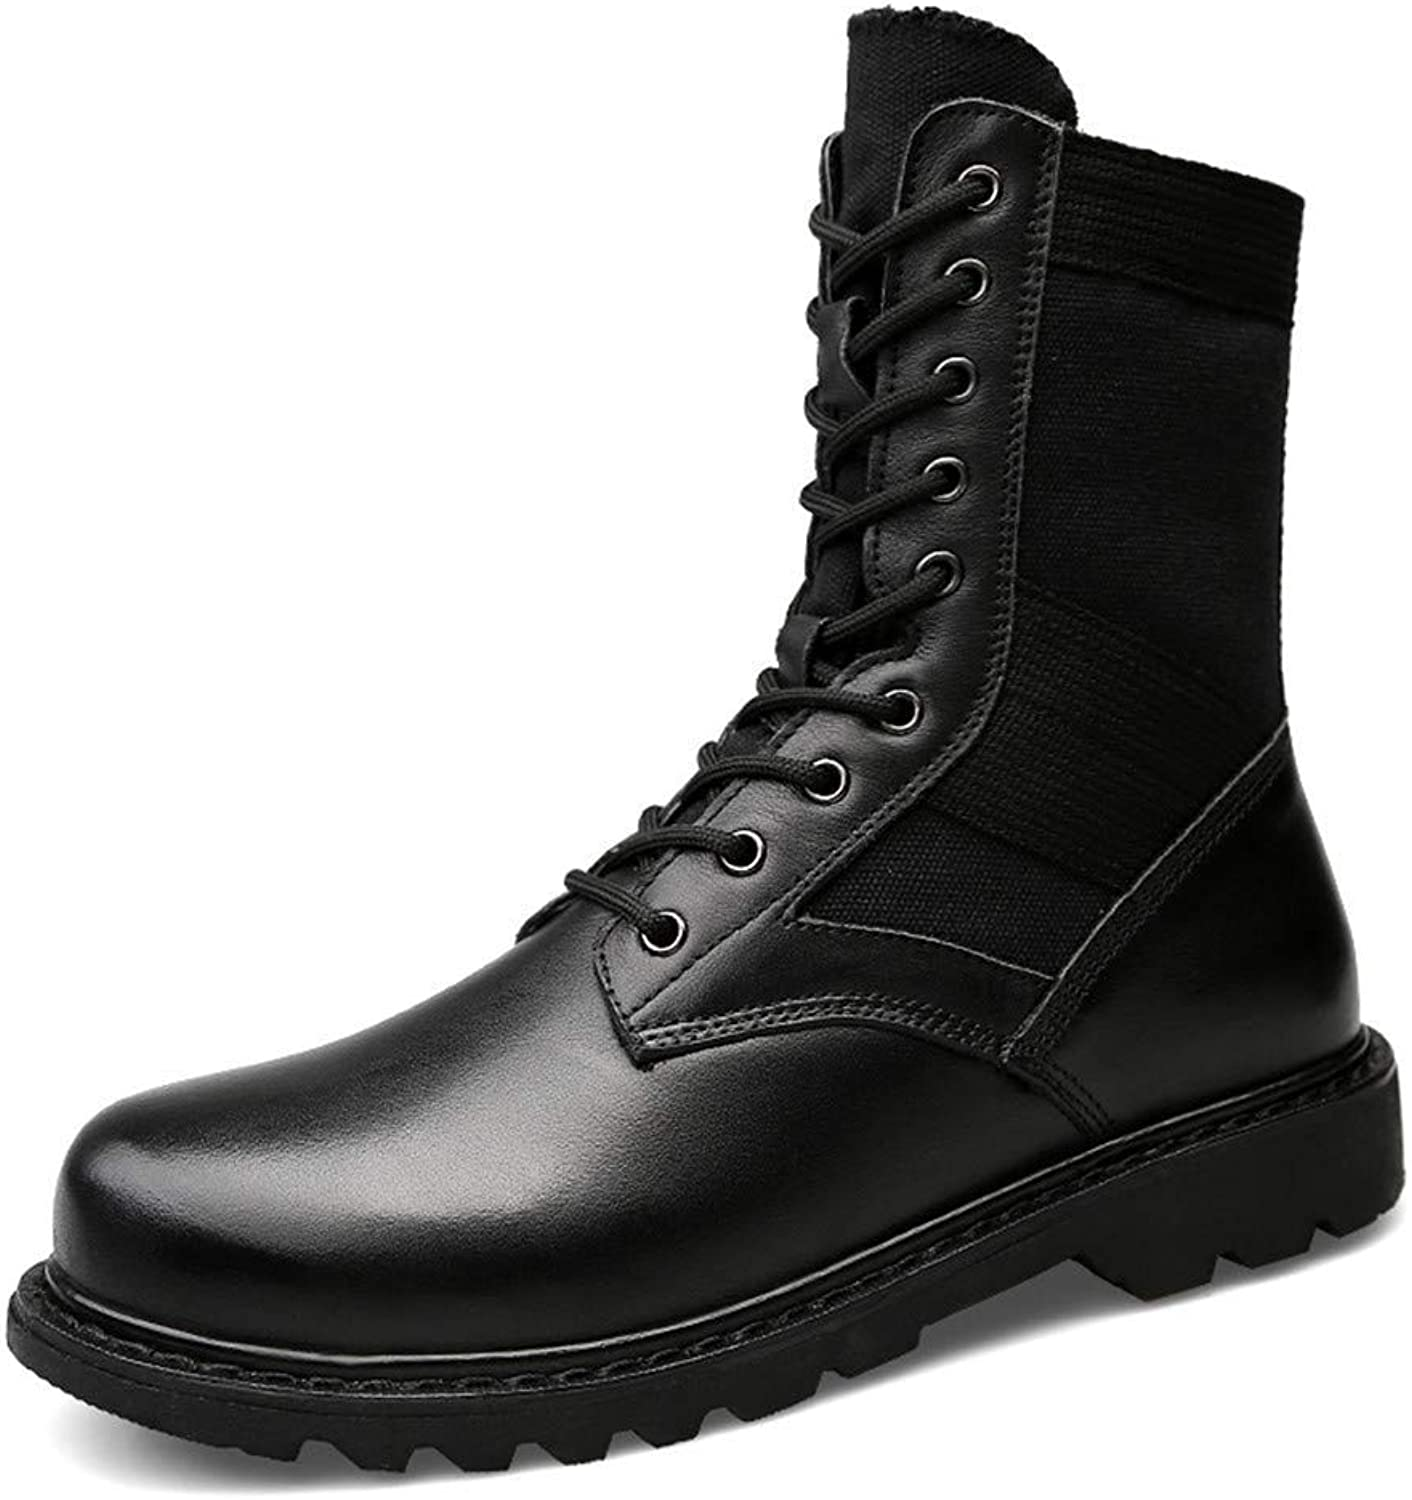 Fuxitoggo Men's Fashion Mid-Calf Boots, Casual in Genuine Leather for Big Martin Boots (Warm Velvet optional) (color  Black, Size  45 EU) (color   As shown, Size   One size)